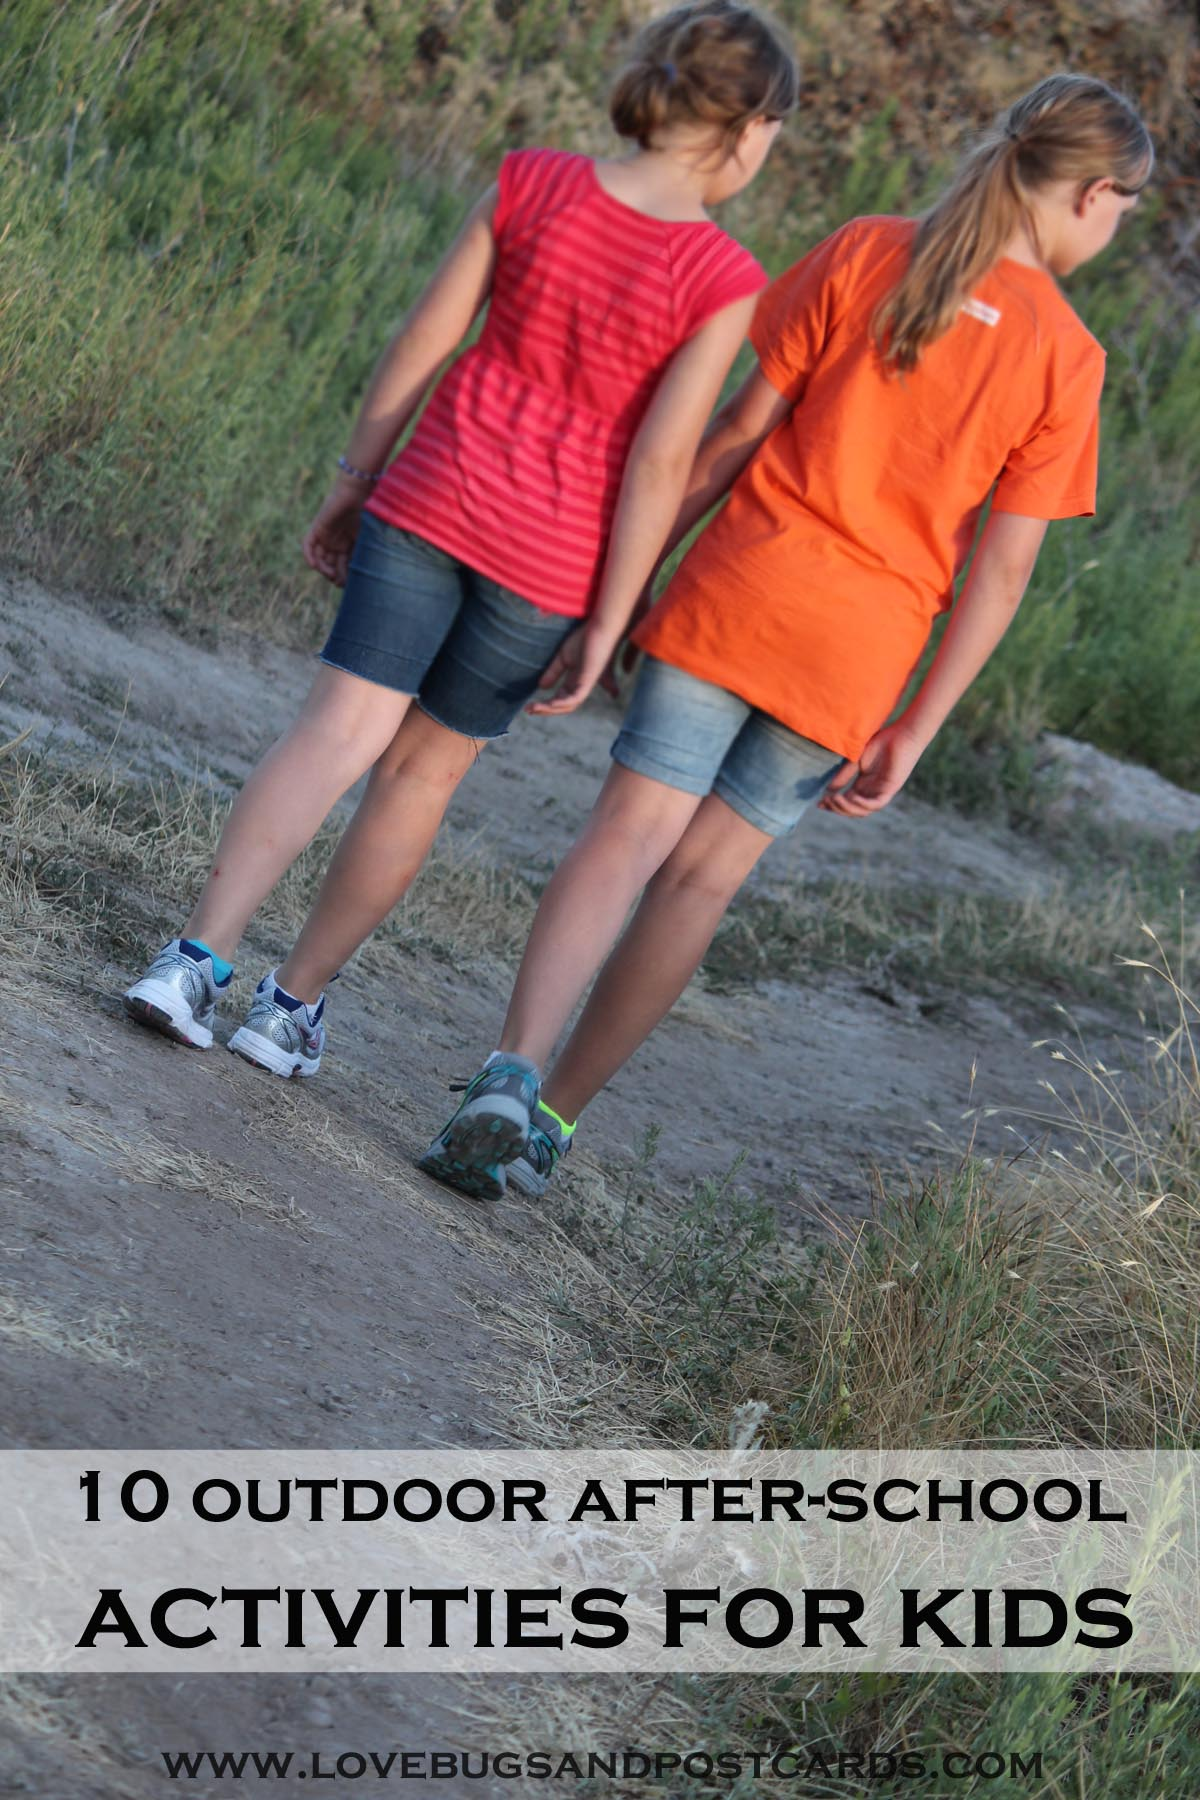 10 outdoor after-school activities for kids